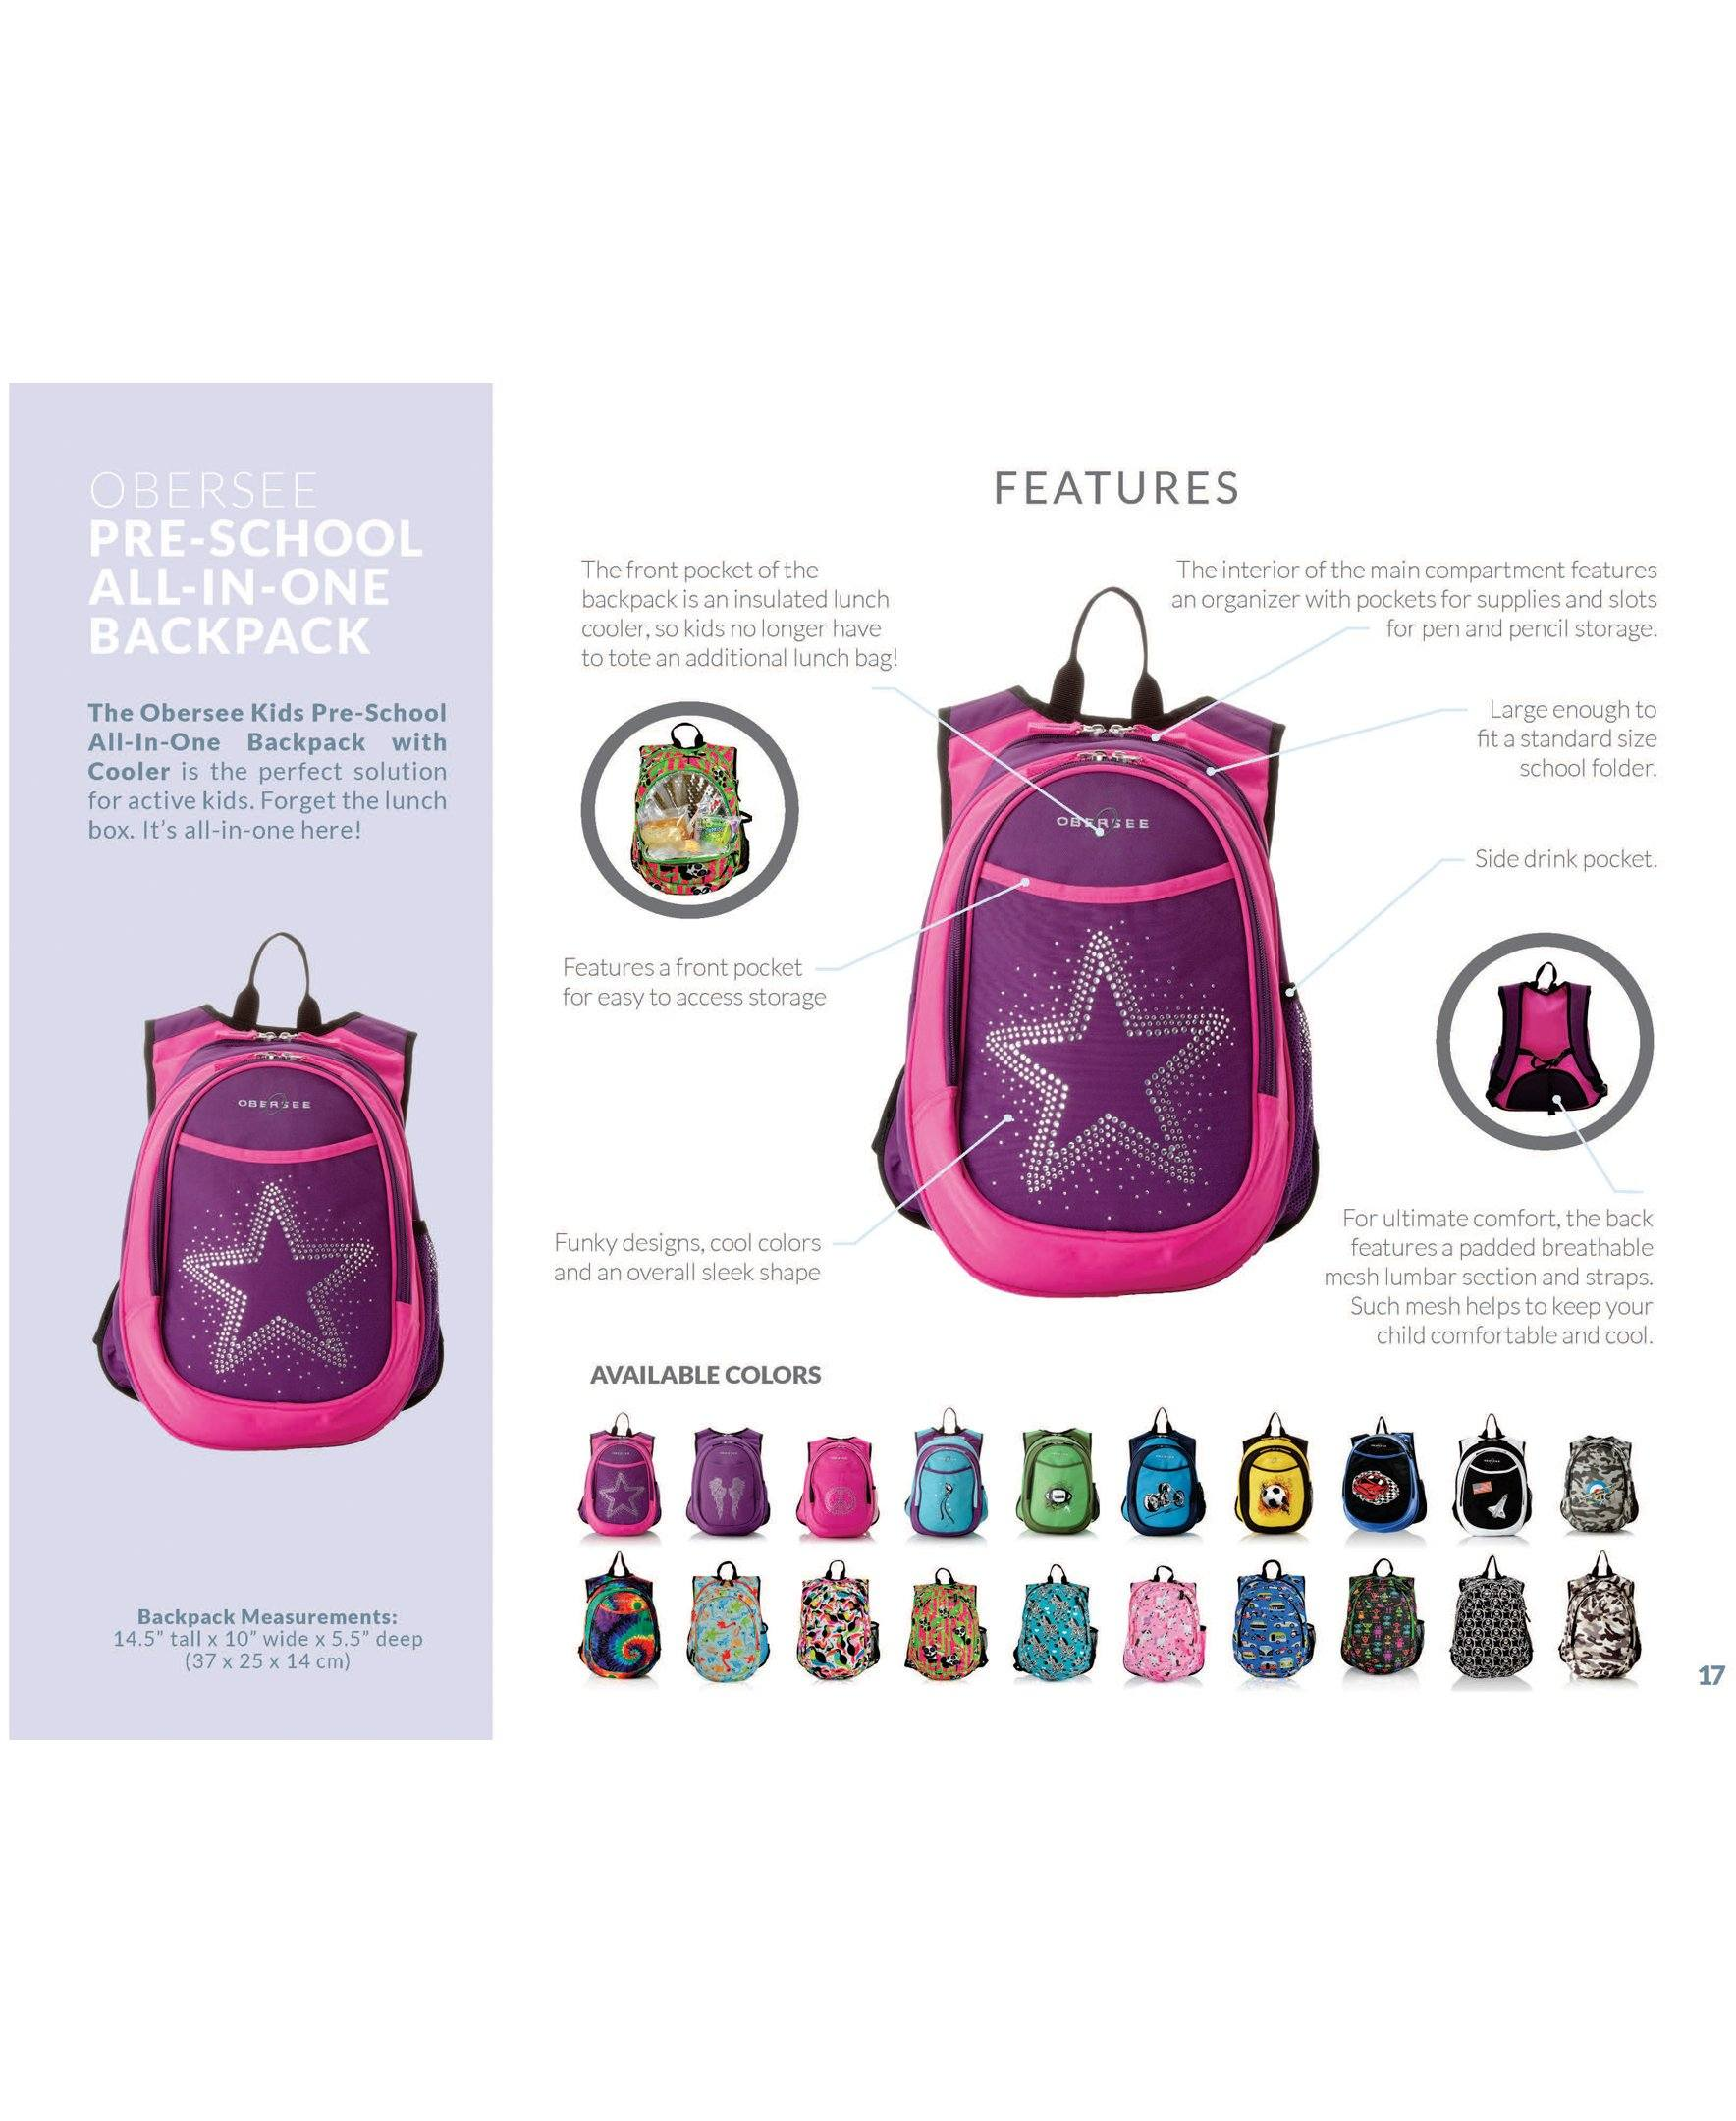 O3KCBP017 Obersee Mini Preschool All-in-One Backpack for Toddlers and Kids with integrated Insulated Cooler | Robots